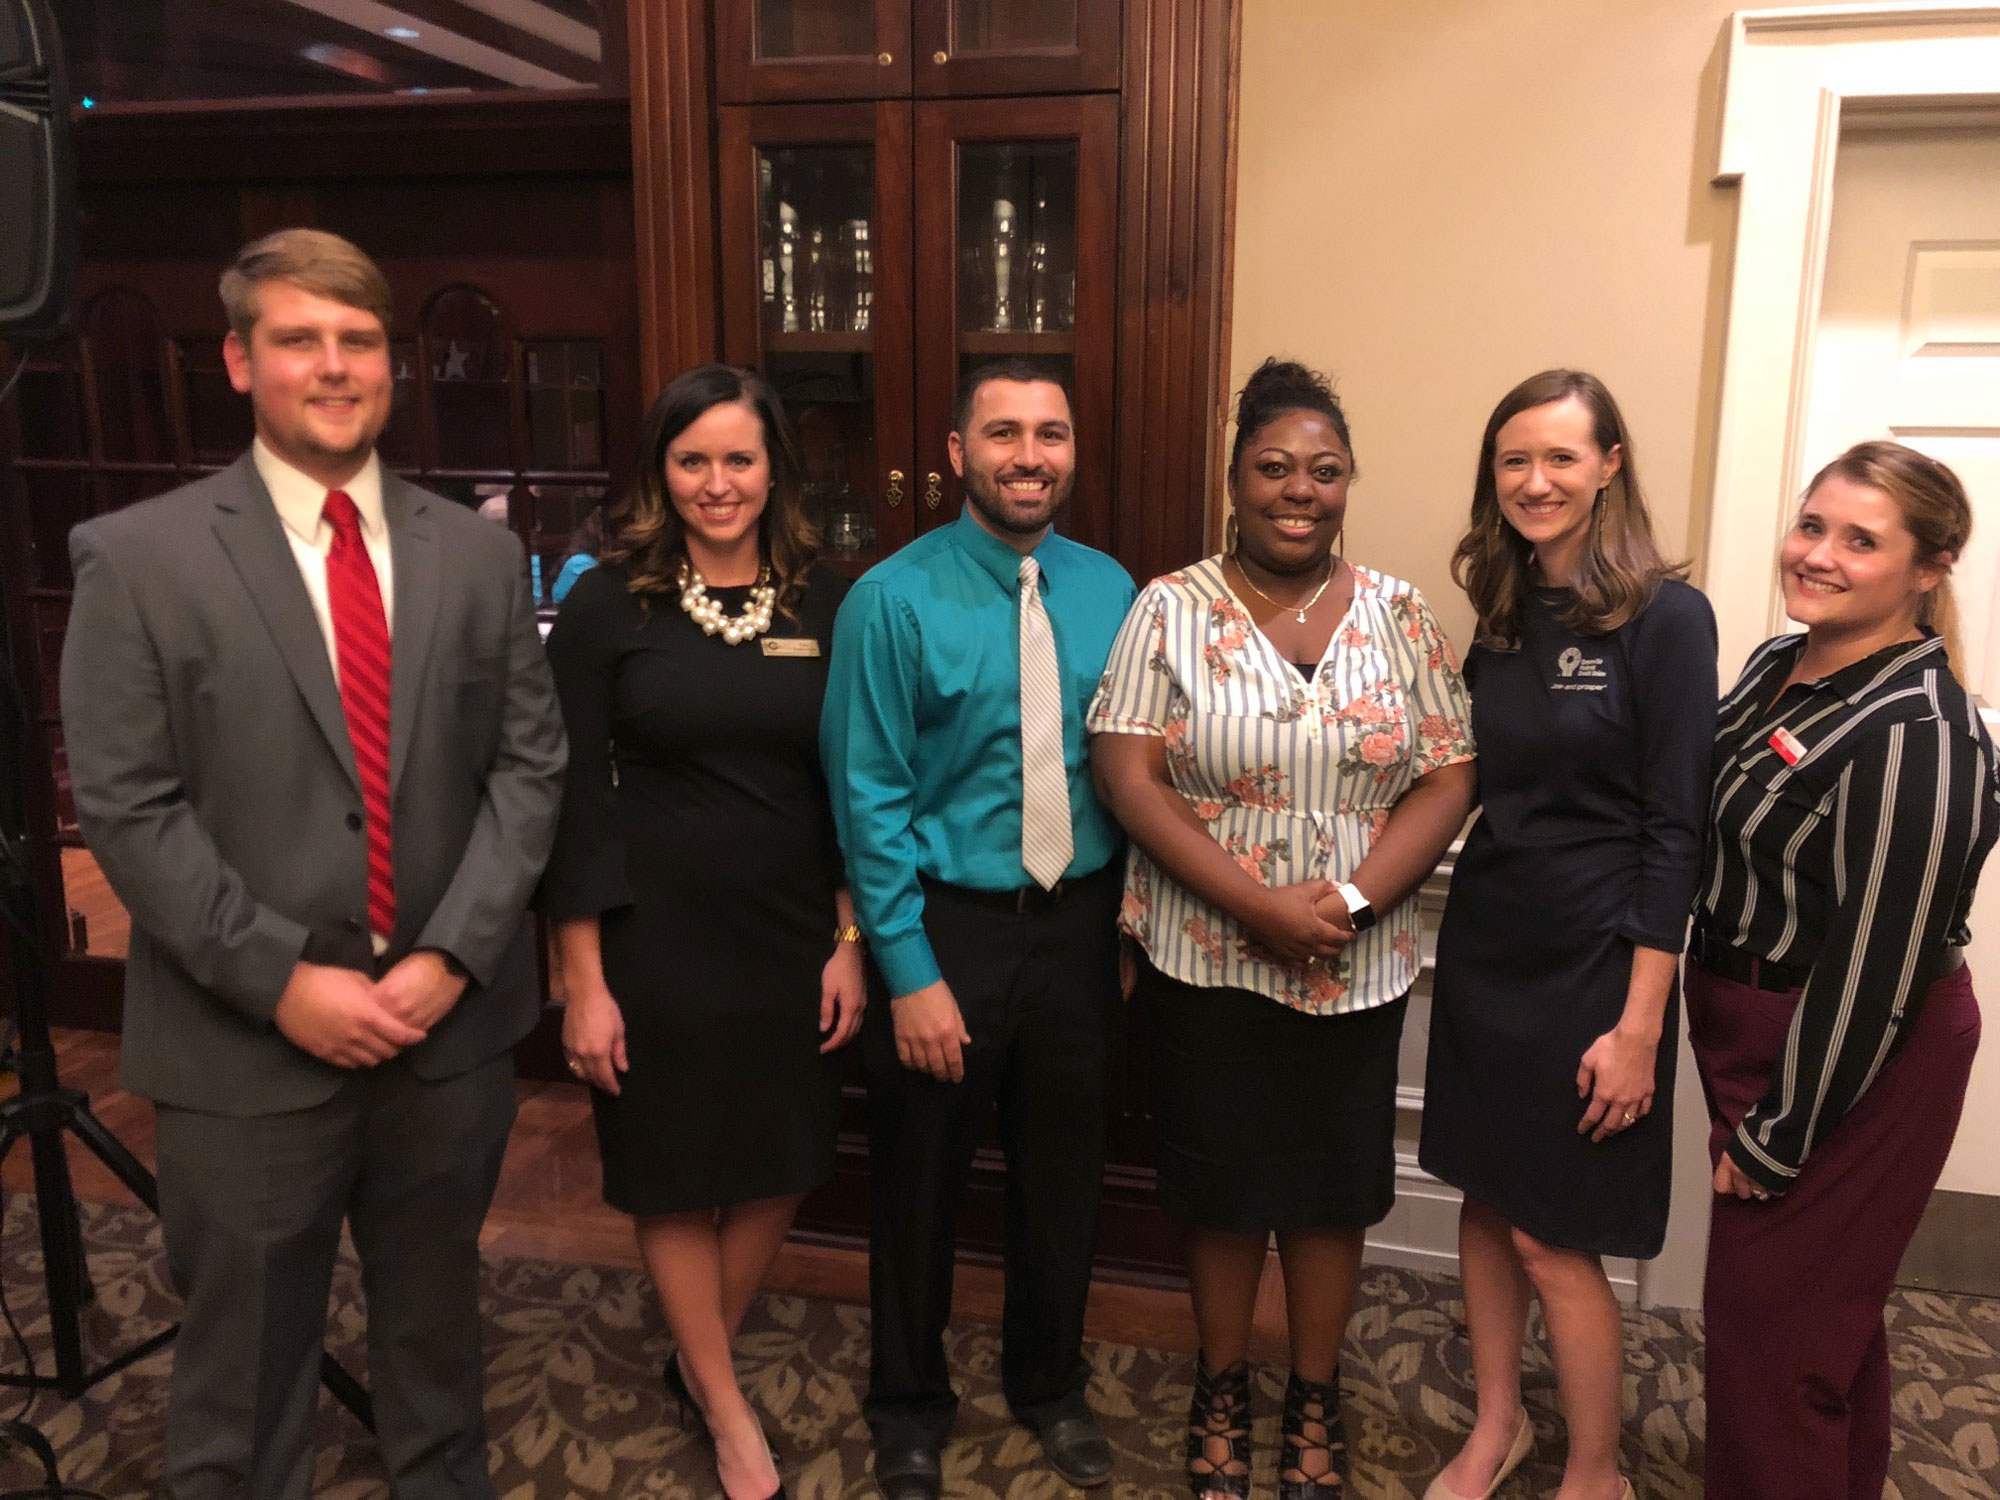 Six candidates competed in the 2018-19 Upstate Chapter Protégé Competition